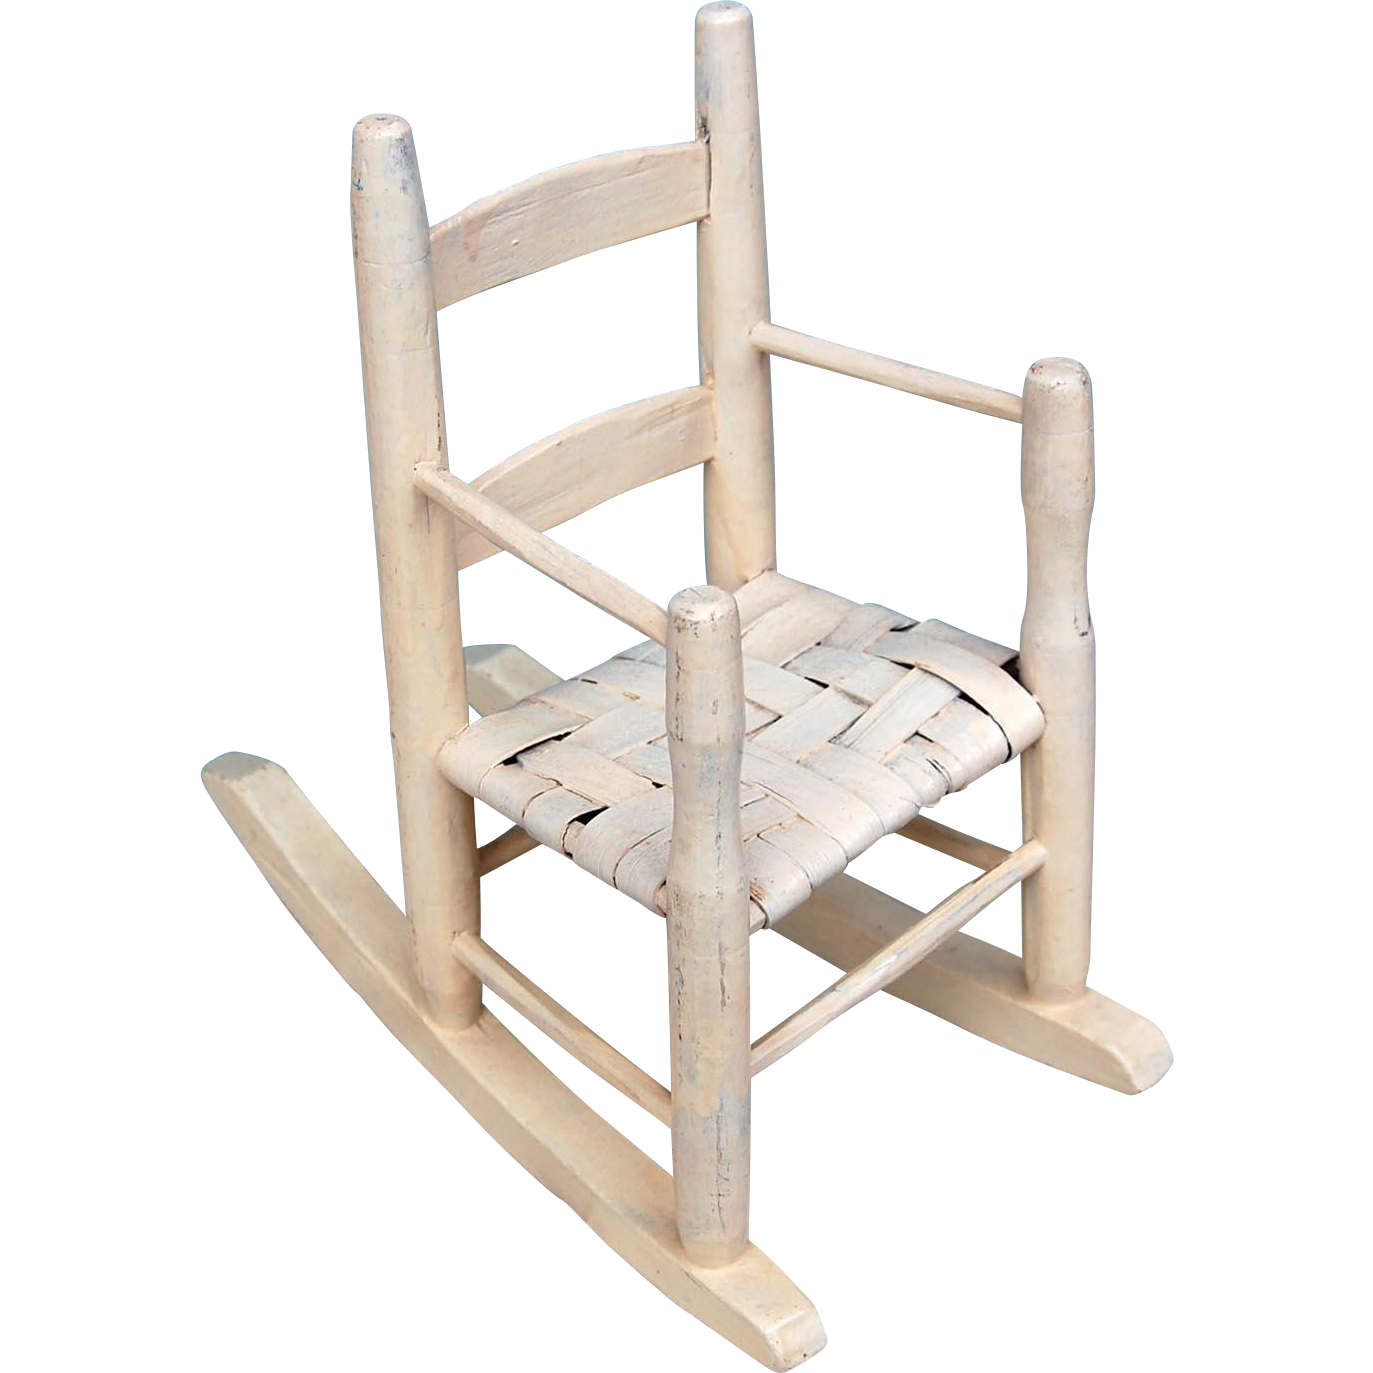 Antique dolls bears wood rocking chair old cream paint woven seat arm rails 19th century